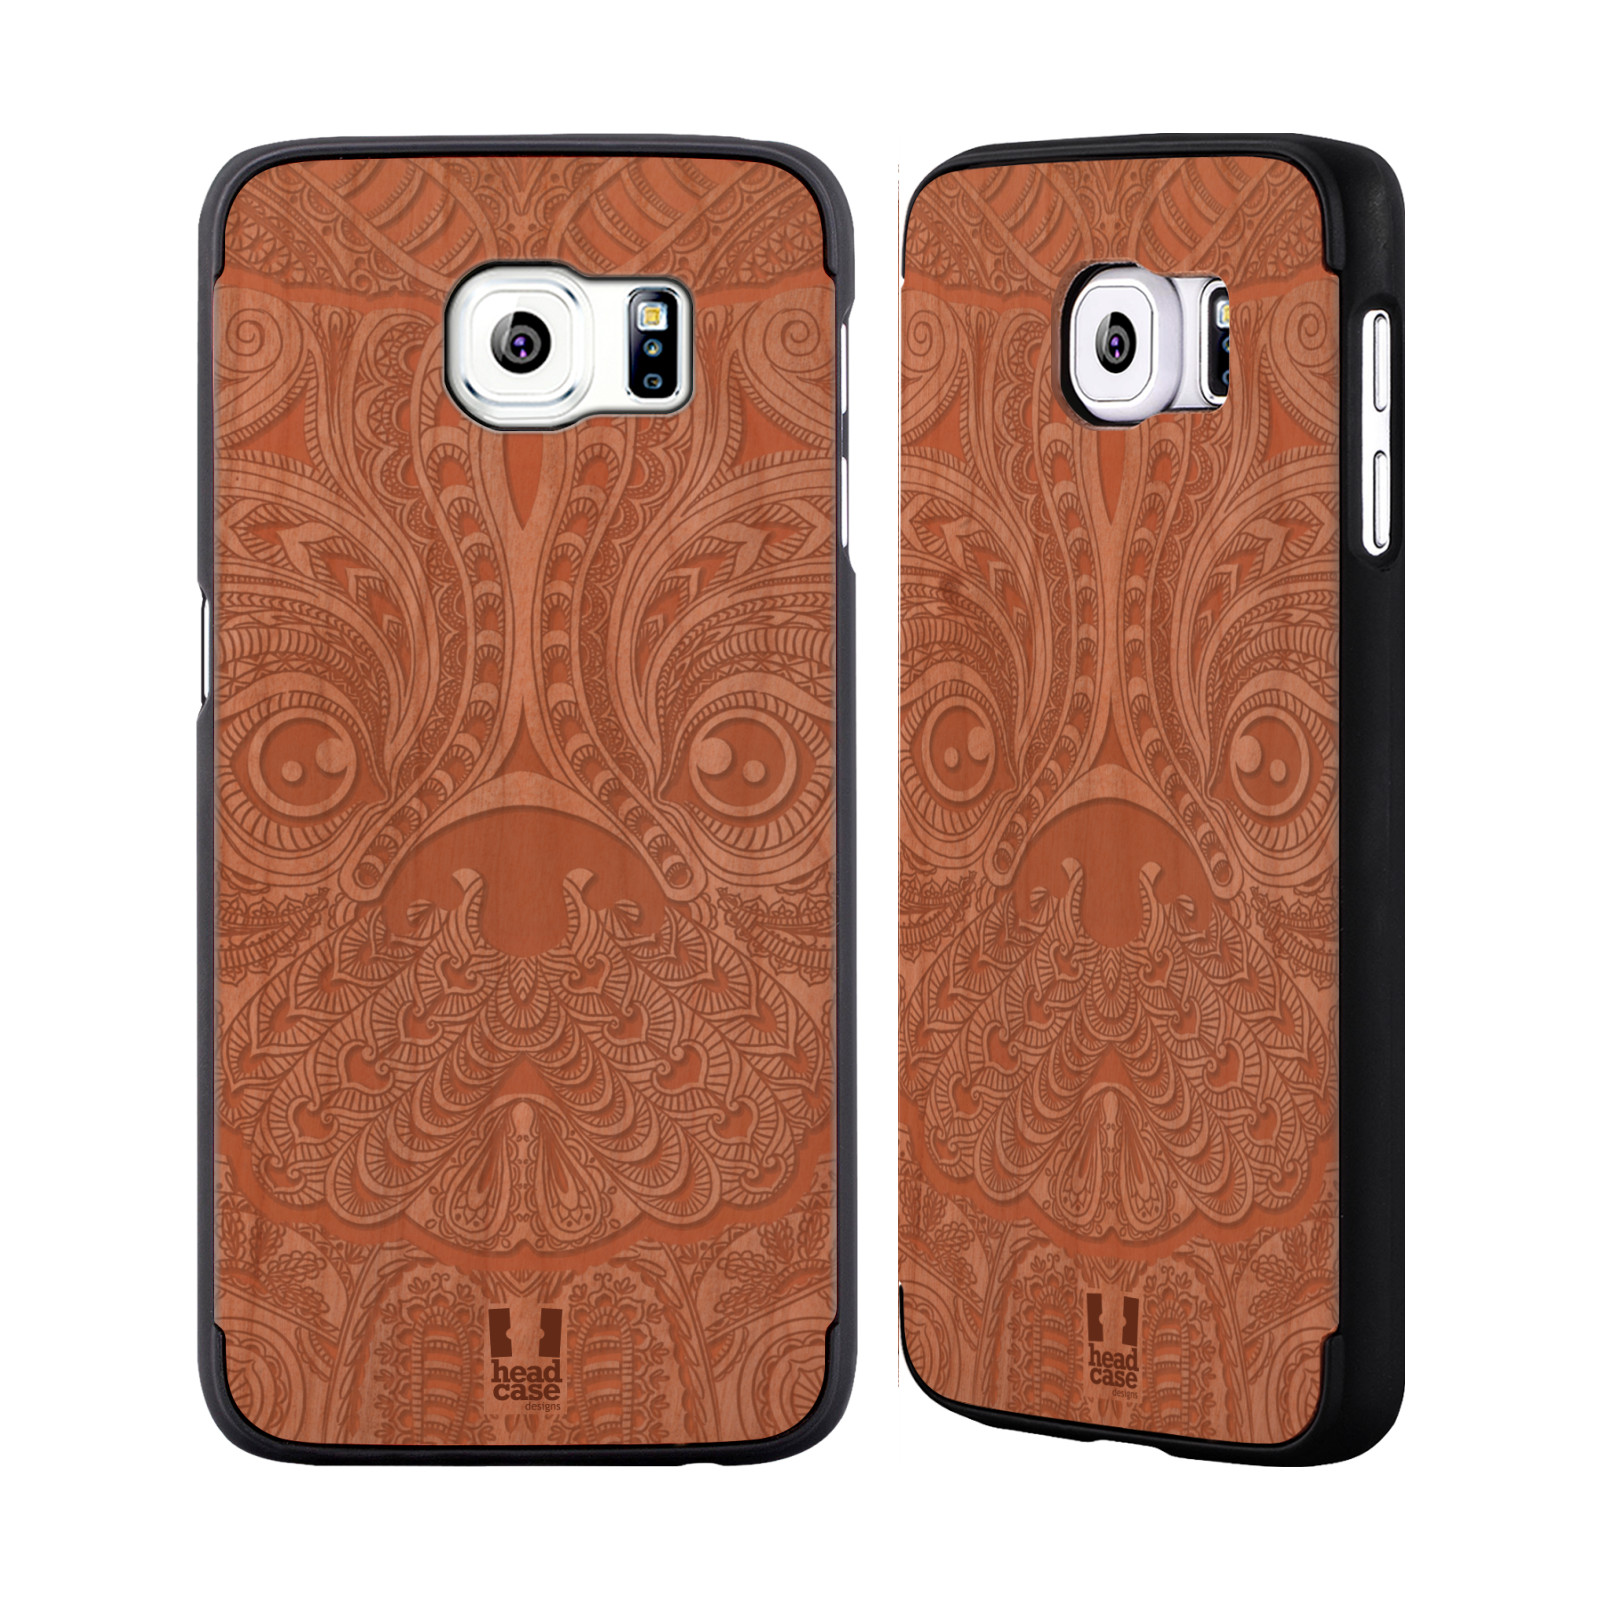 Head case designs wooden intricacies rose wood back case for Case design